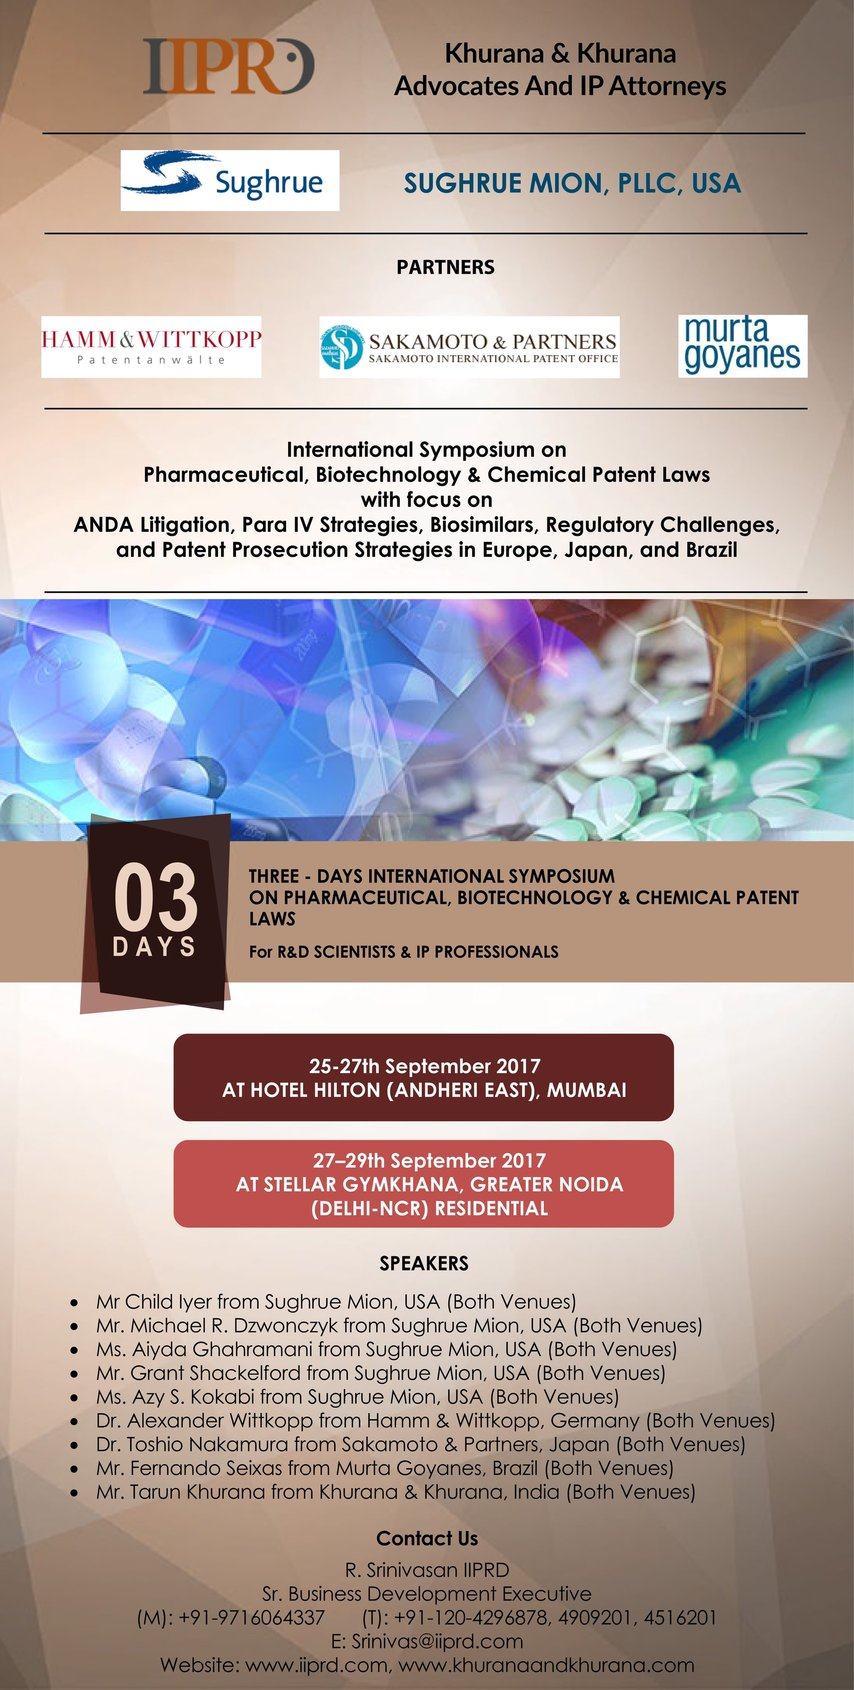 Symposium On Pharmaceutical, Biotechnology, And Chemical Patent Laws